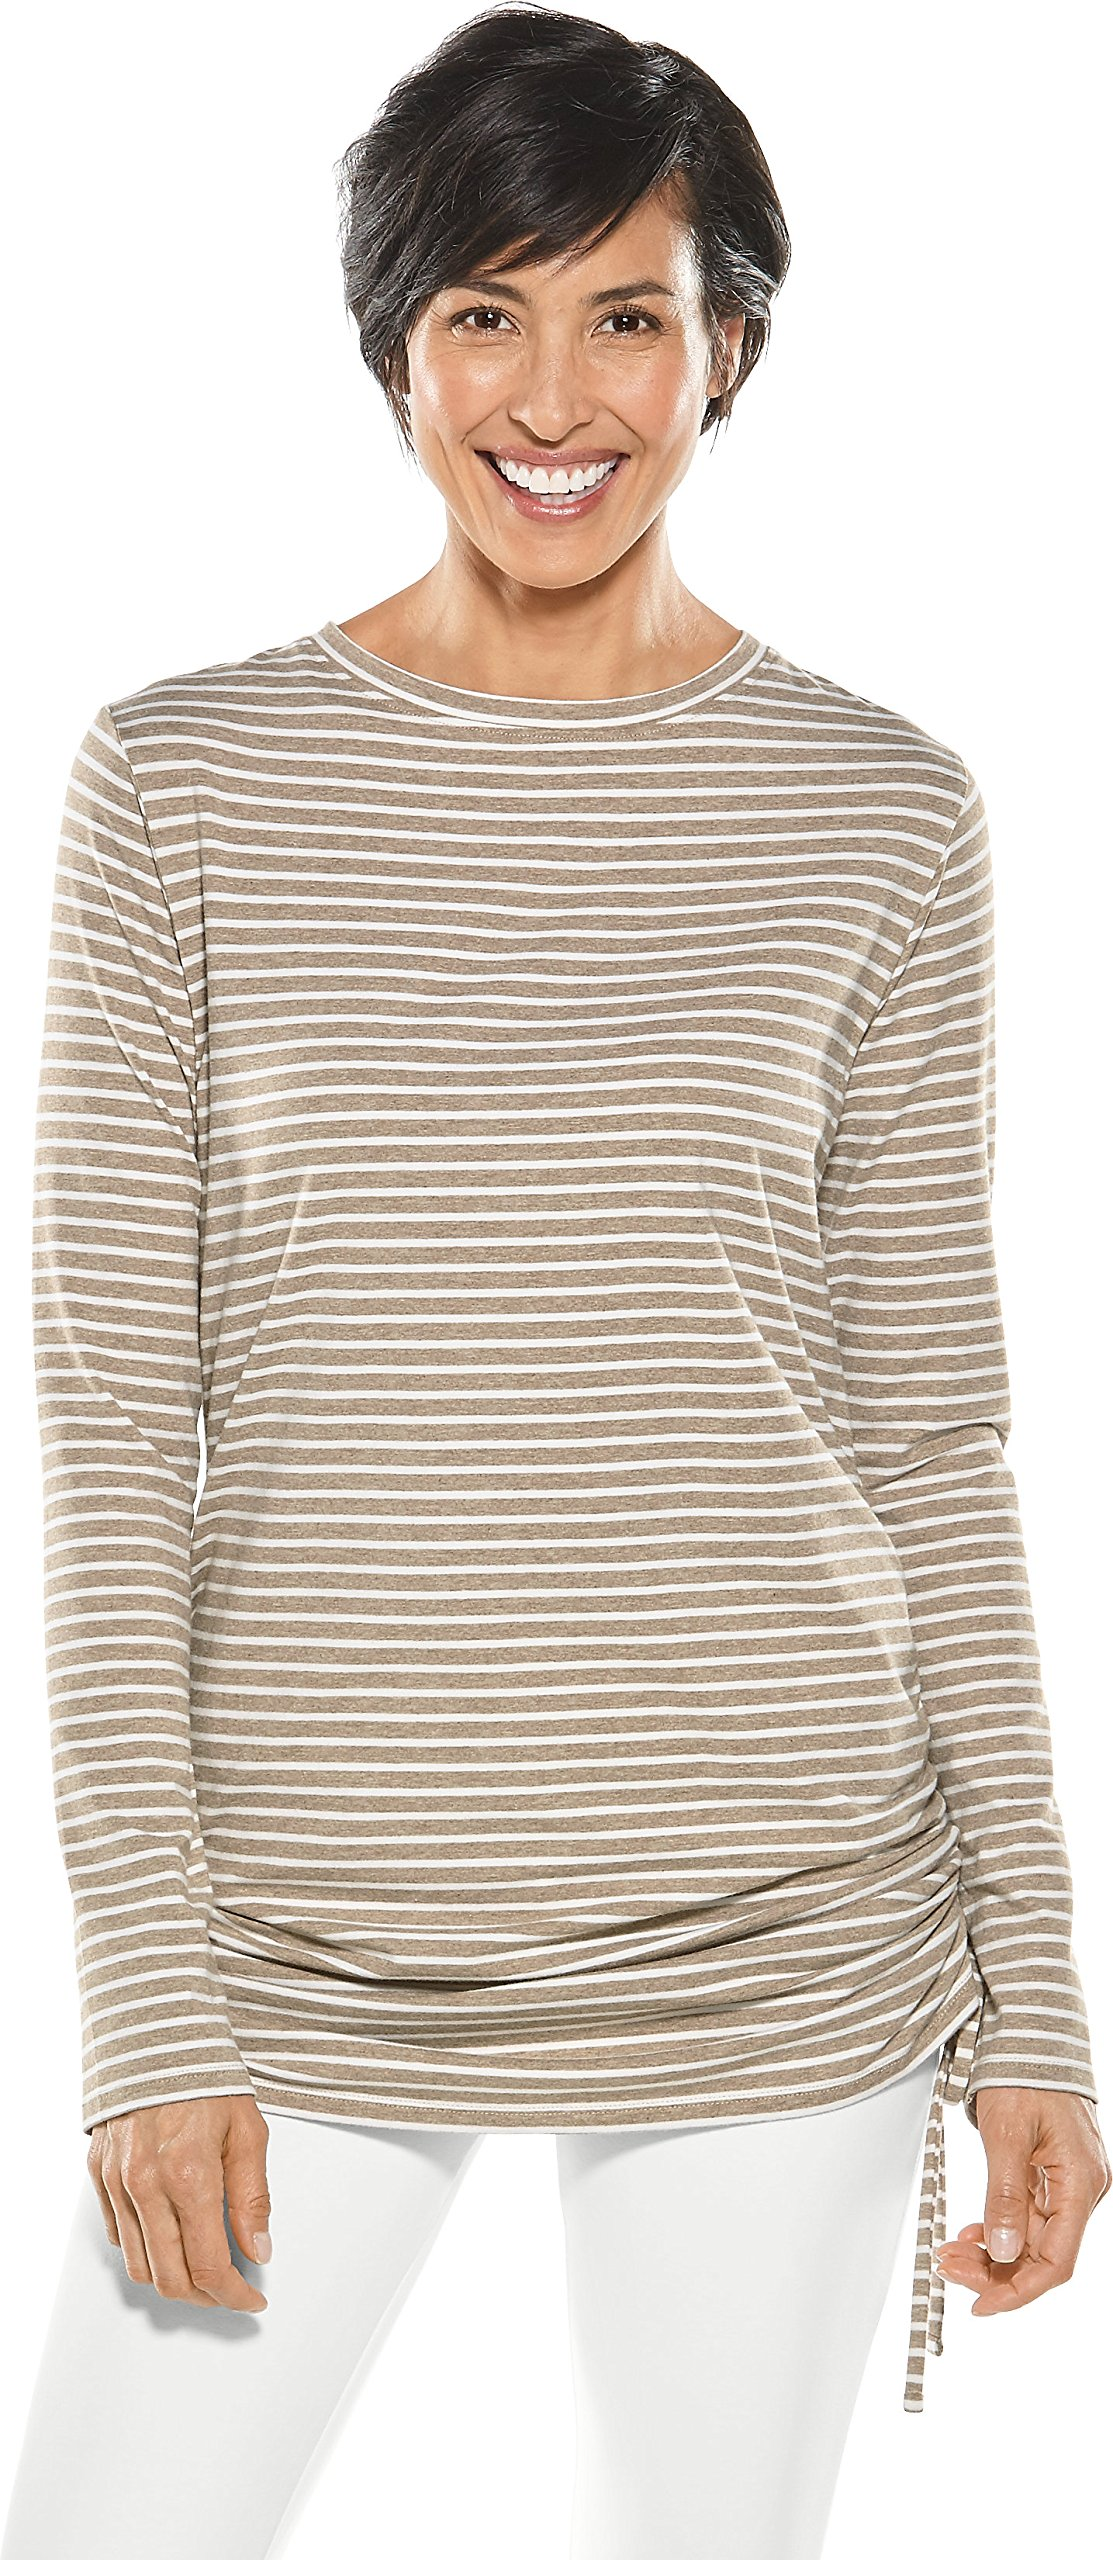 Coolibar UPF 50+ Women's Summer Cover-up - Sun Protective (Small- Dark Taupe/White)